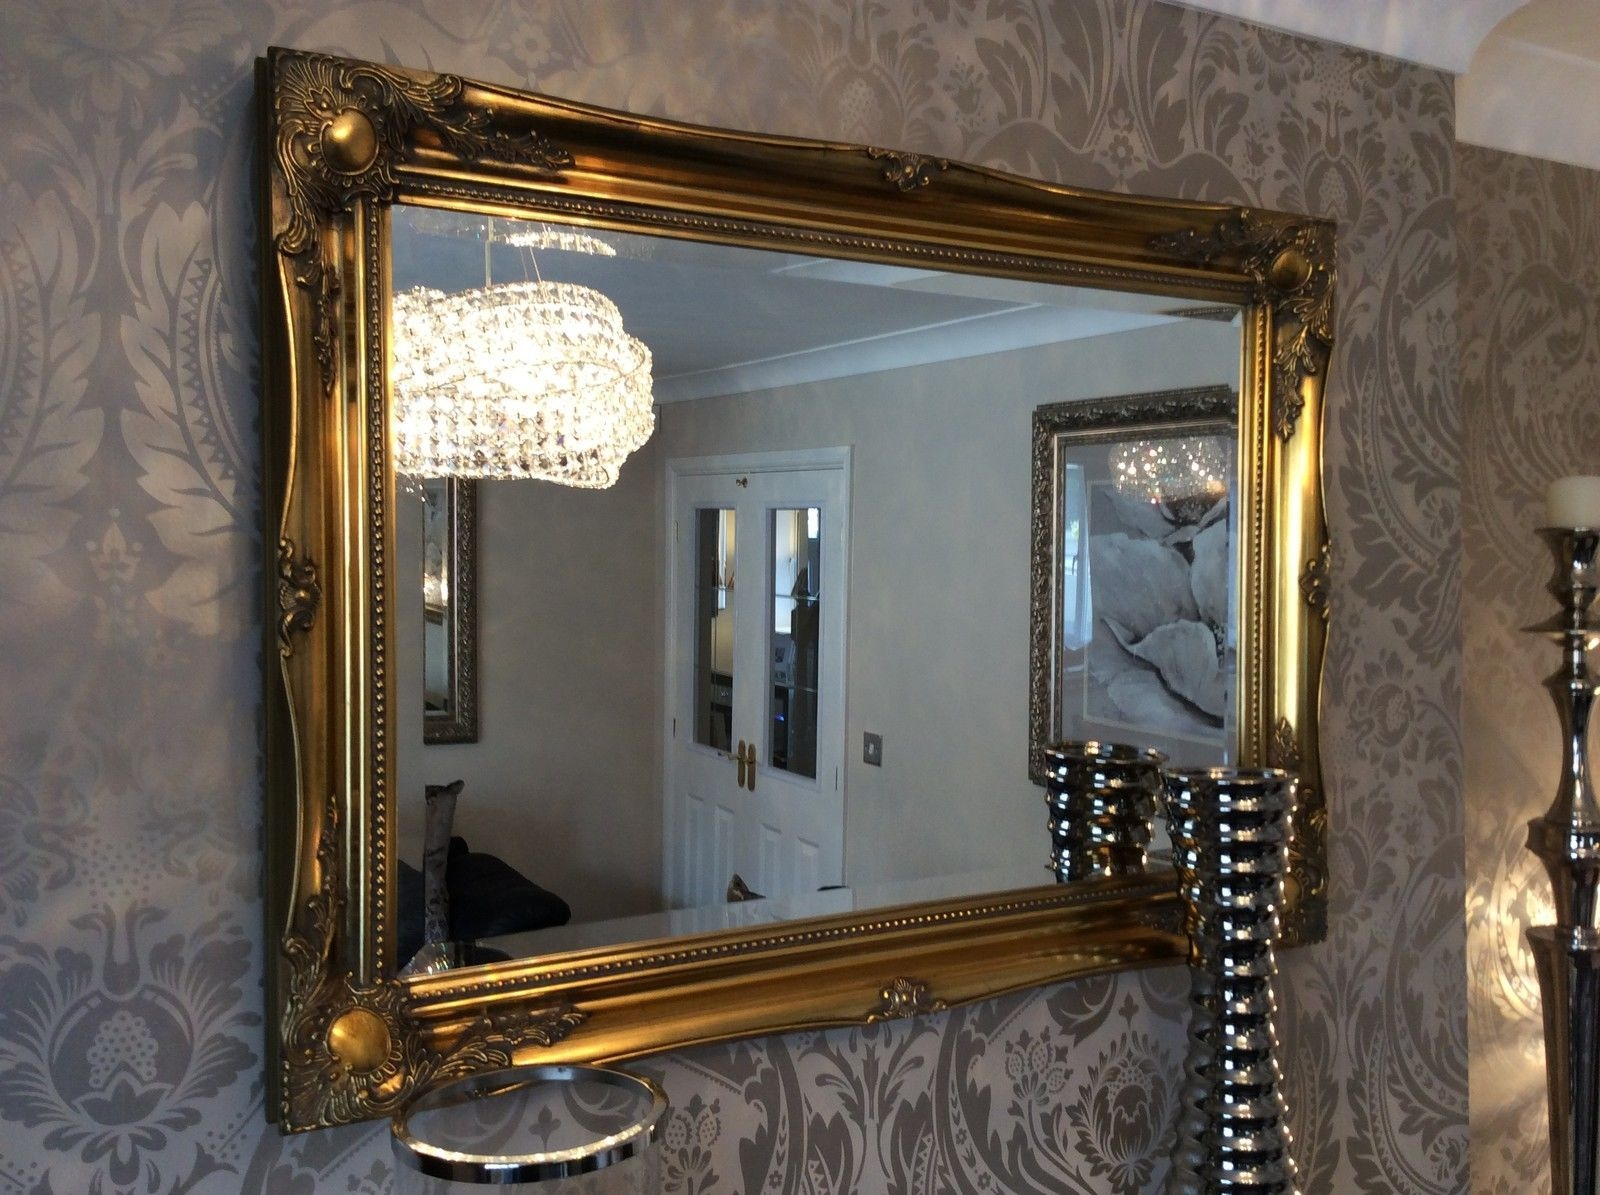 Classic Impression On Antique Wall Mirrors Vwho Inside Large Gold Antique Mirror (Image 5 of 15)